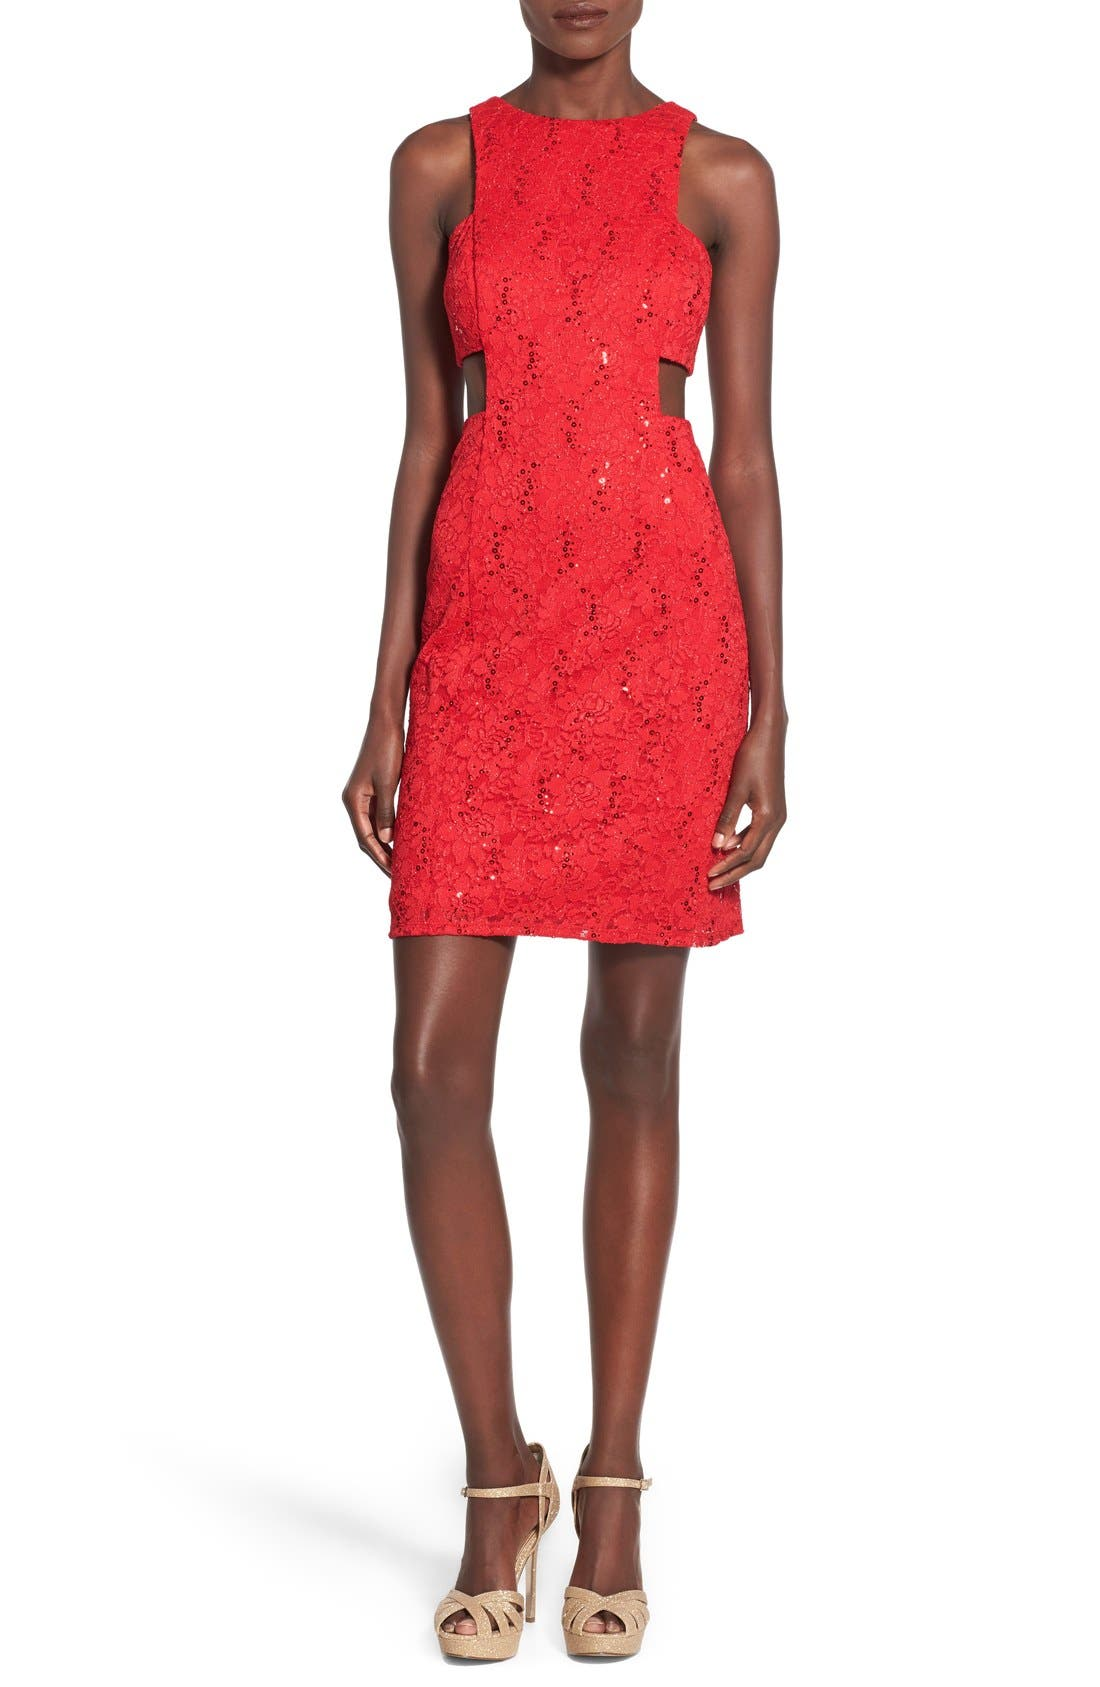 Alternate Image 1 Selected - Morgan & Co. Side Cutout Sequin Lace Dress